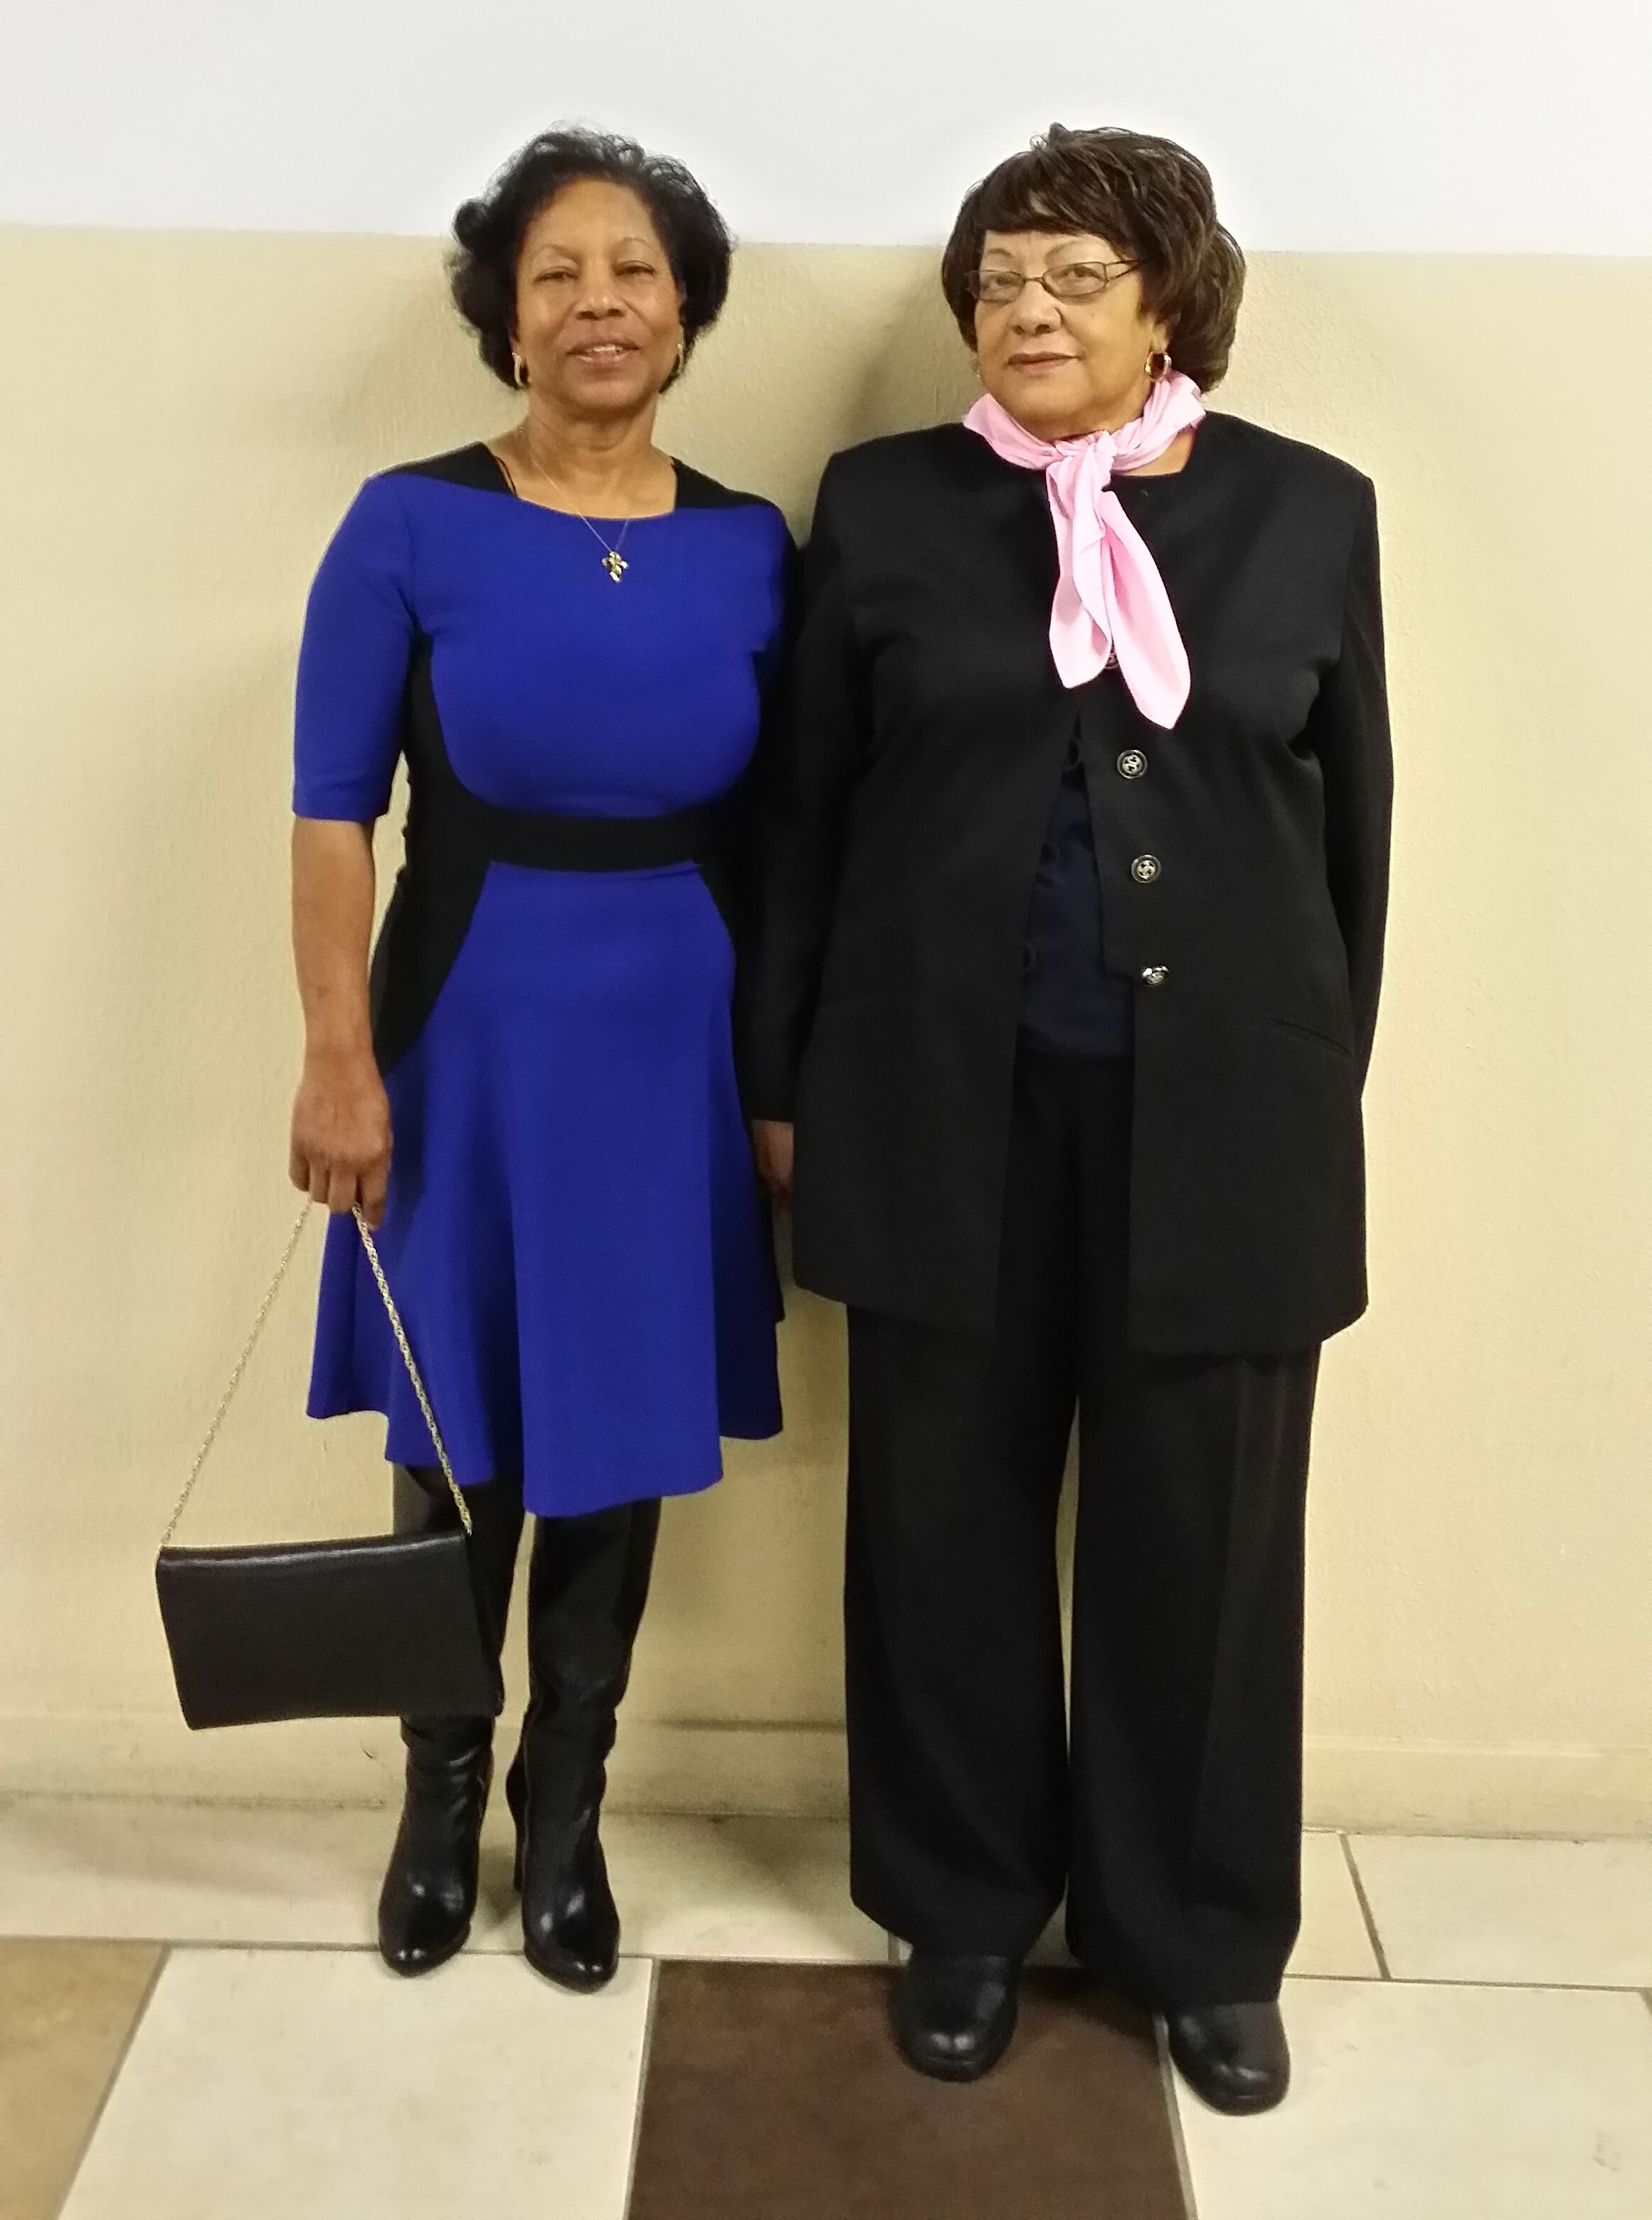 Alabama wilcox county camden - Brenda Bussey And Rosetta Anderson Leaders In Wilcox County Voting Rights